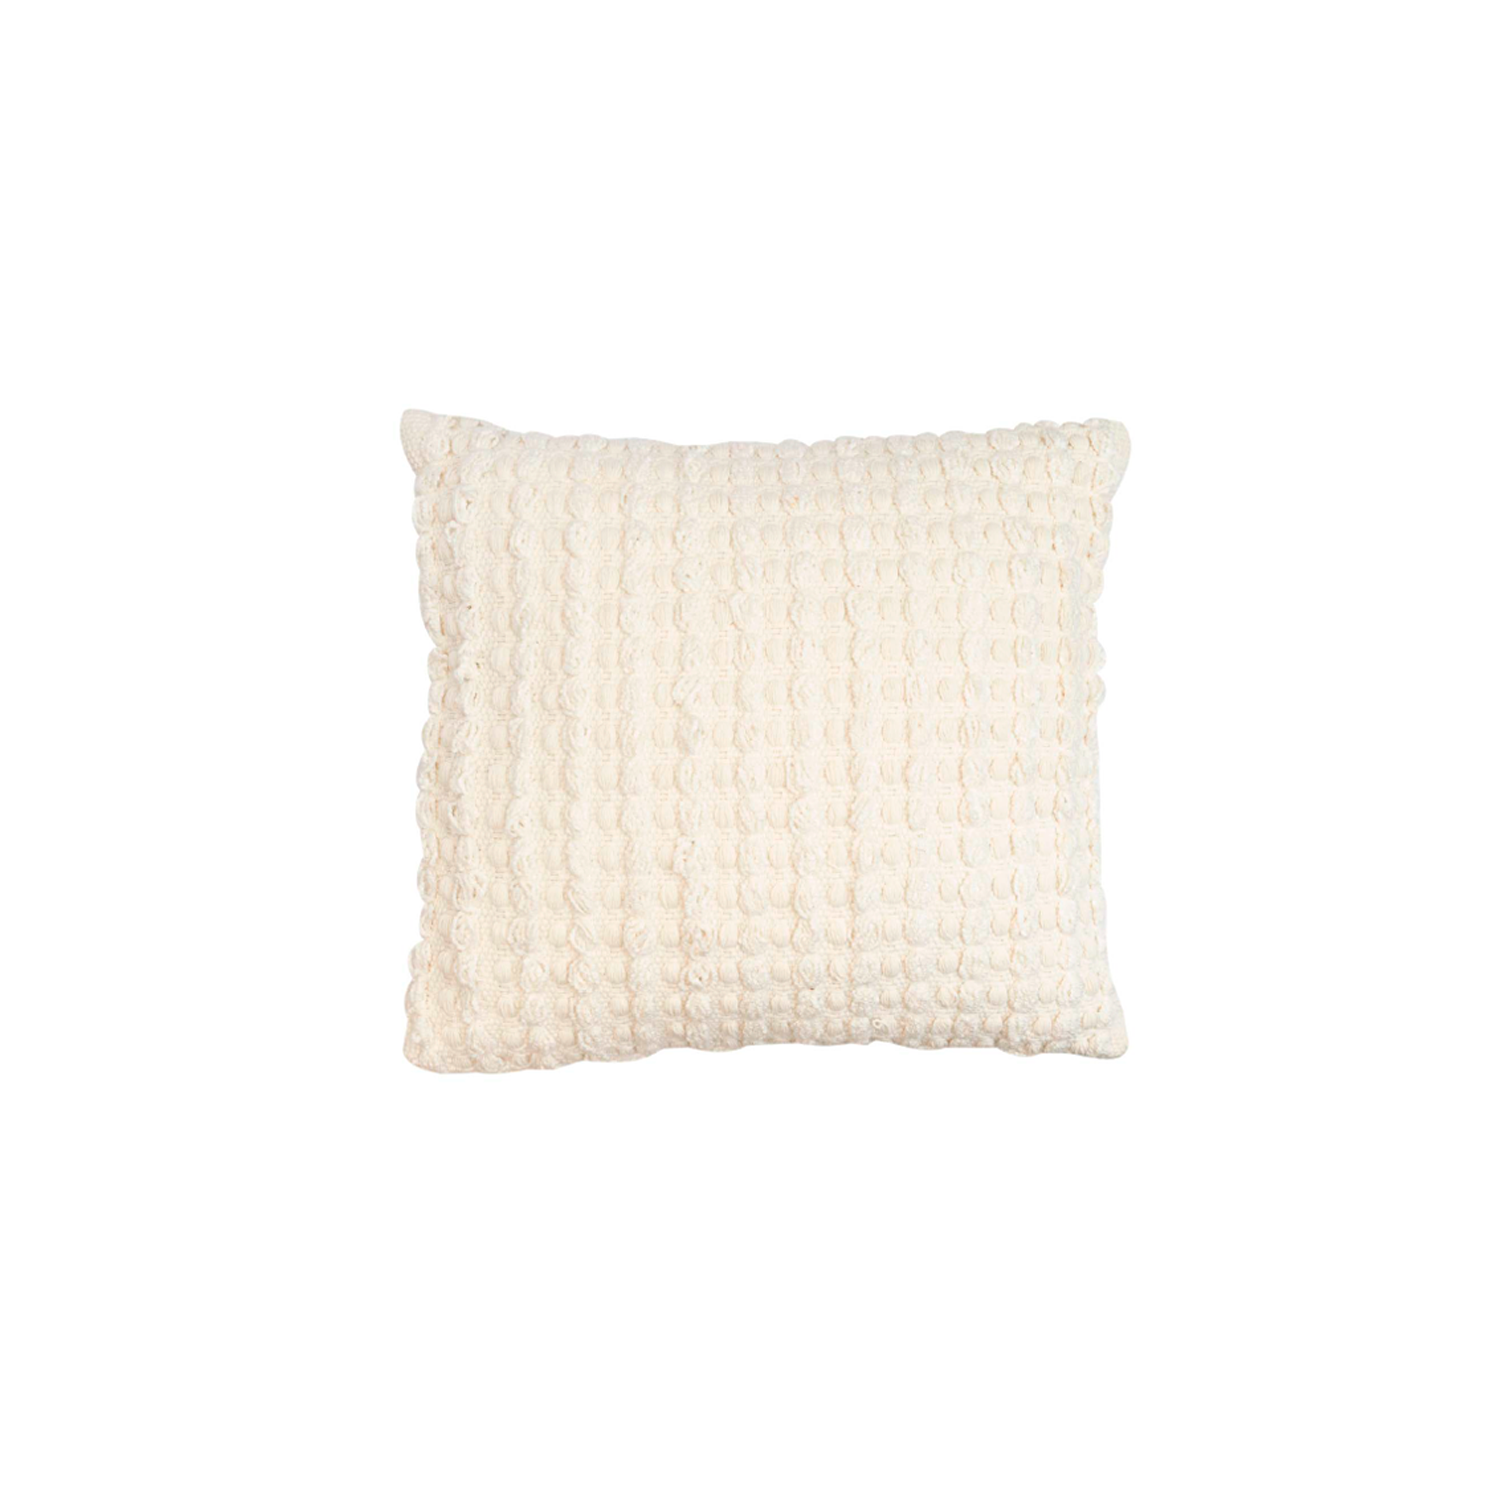 Estrela Branca Cotton Cushion Square - The Flame Sustainable Collection is made from a selection of organic cotton fibres, eco-friendly, hand-woven or elaborated using traditional hand-loom techniques. Carefully knitted within a trained community of women that found in their craft a way to provide their families.  This collection combines Elisa Atheniense mission for responsible sourcing and manufacturing. Each piece is meticulously hand-loom by artisans who practised methods with age-old techniques. With a minimal electricity impact, each item crafted is therefore unique and exclusive. Weavers and artisans are the ultimate lifelines of Elisa Atheniense Home Products.  The hand woven cotton, washable cushion cover is made in Brazil and the inner cushion is made in the UK.   | Matter of Stuff